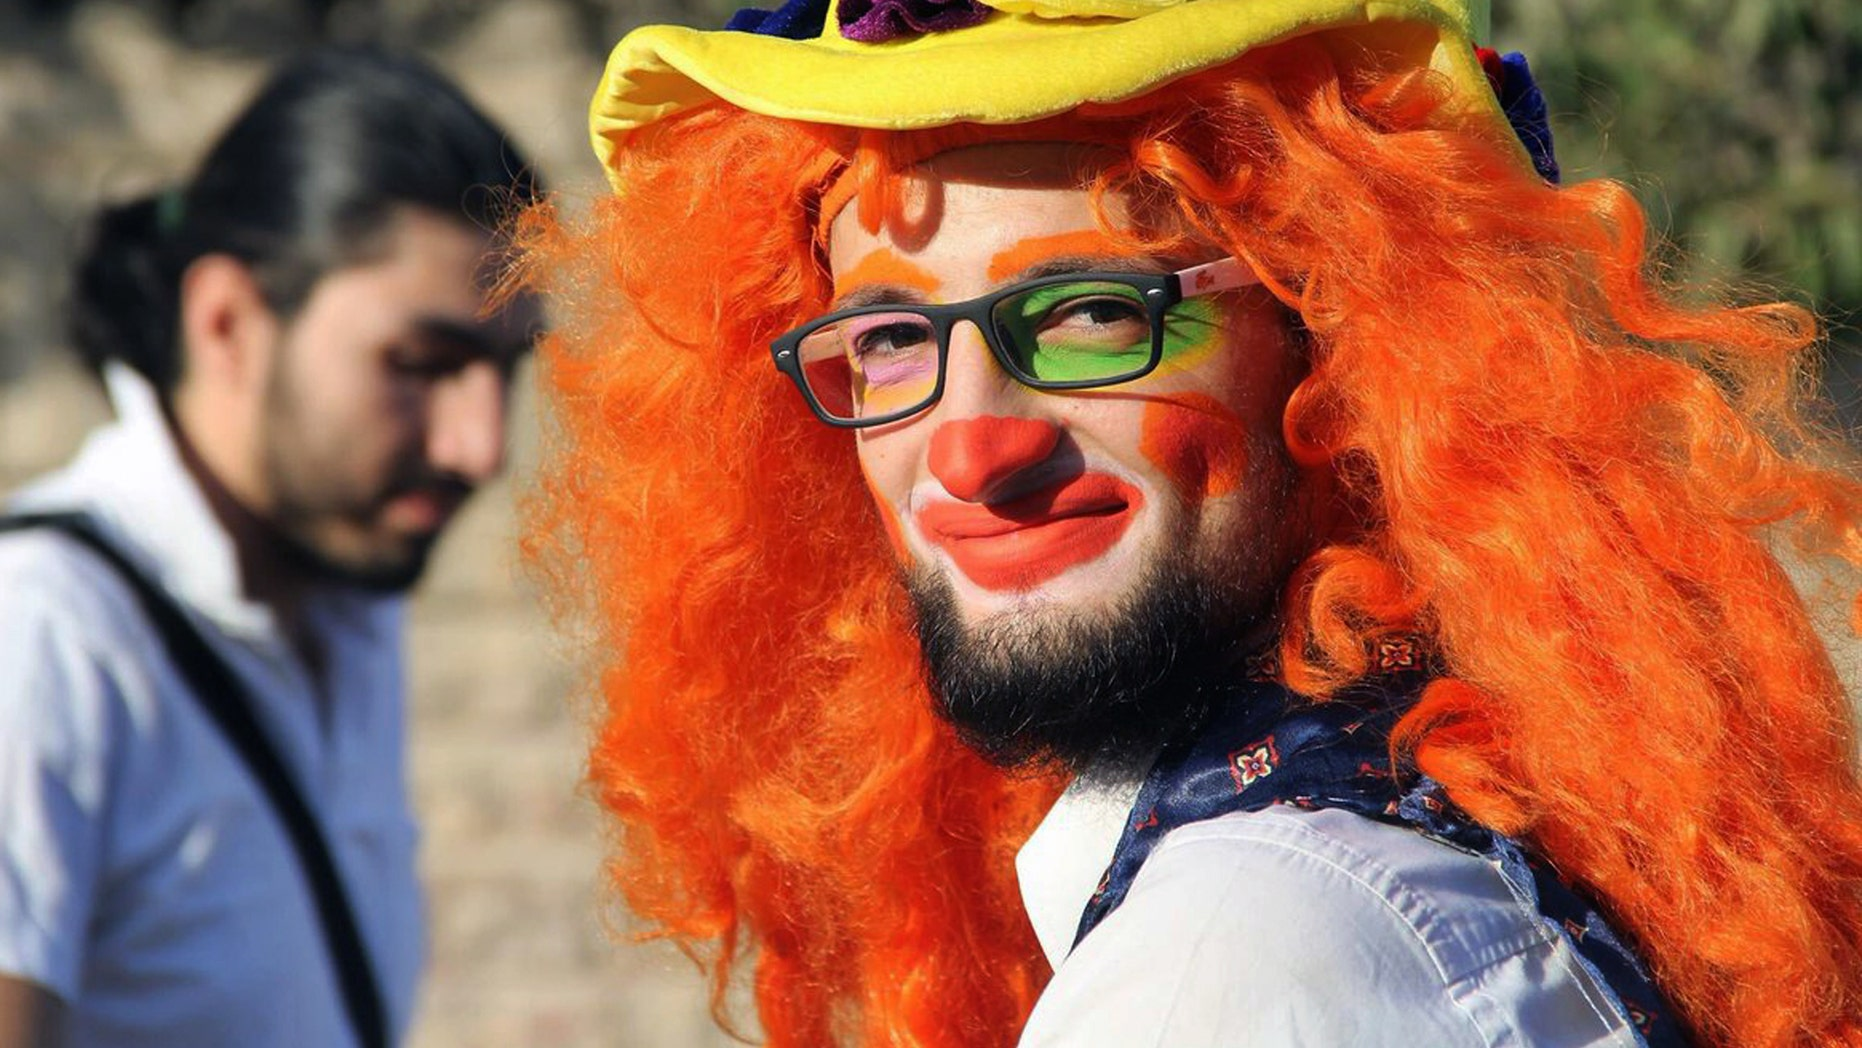 Syrian social worker Anas al-Basha, 24, dressed as a clown, while posing for a photograph in Aleppo, Syria.